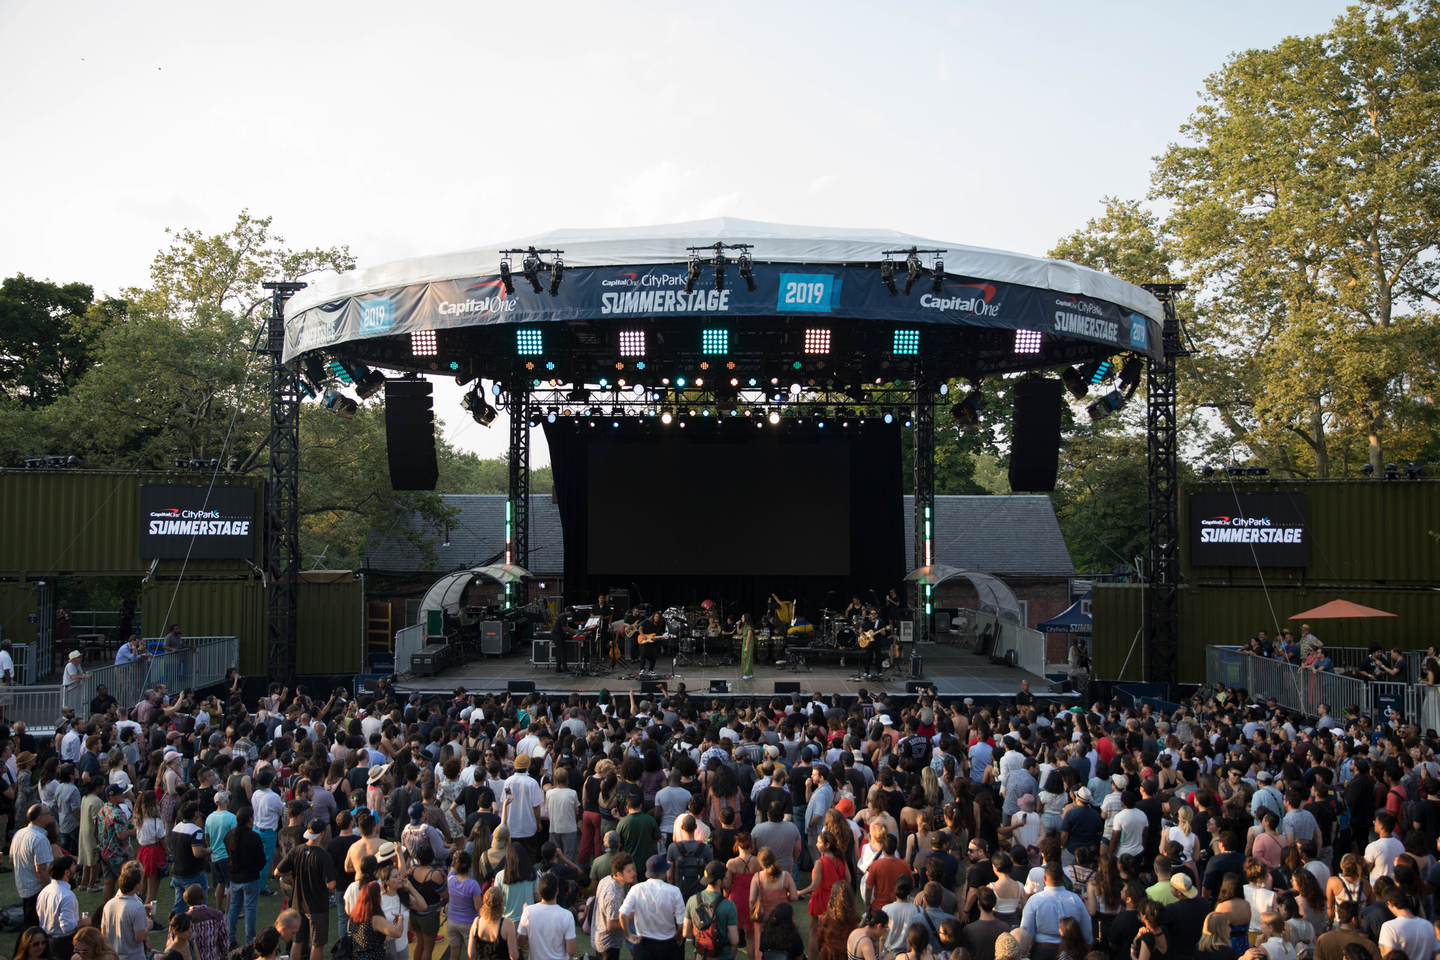 Since SummerStage is an annual outdoor festival (besides last year's event, which was virtual), organizers are used to producing rain or shine.